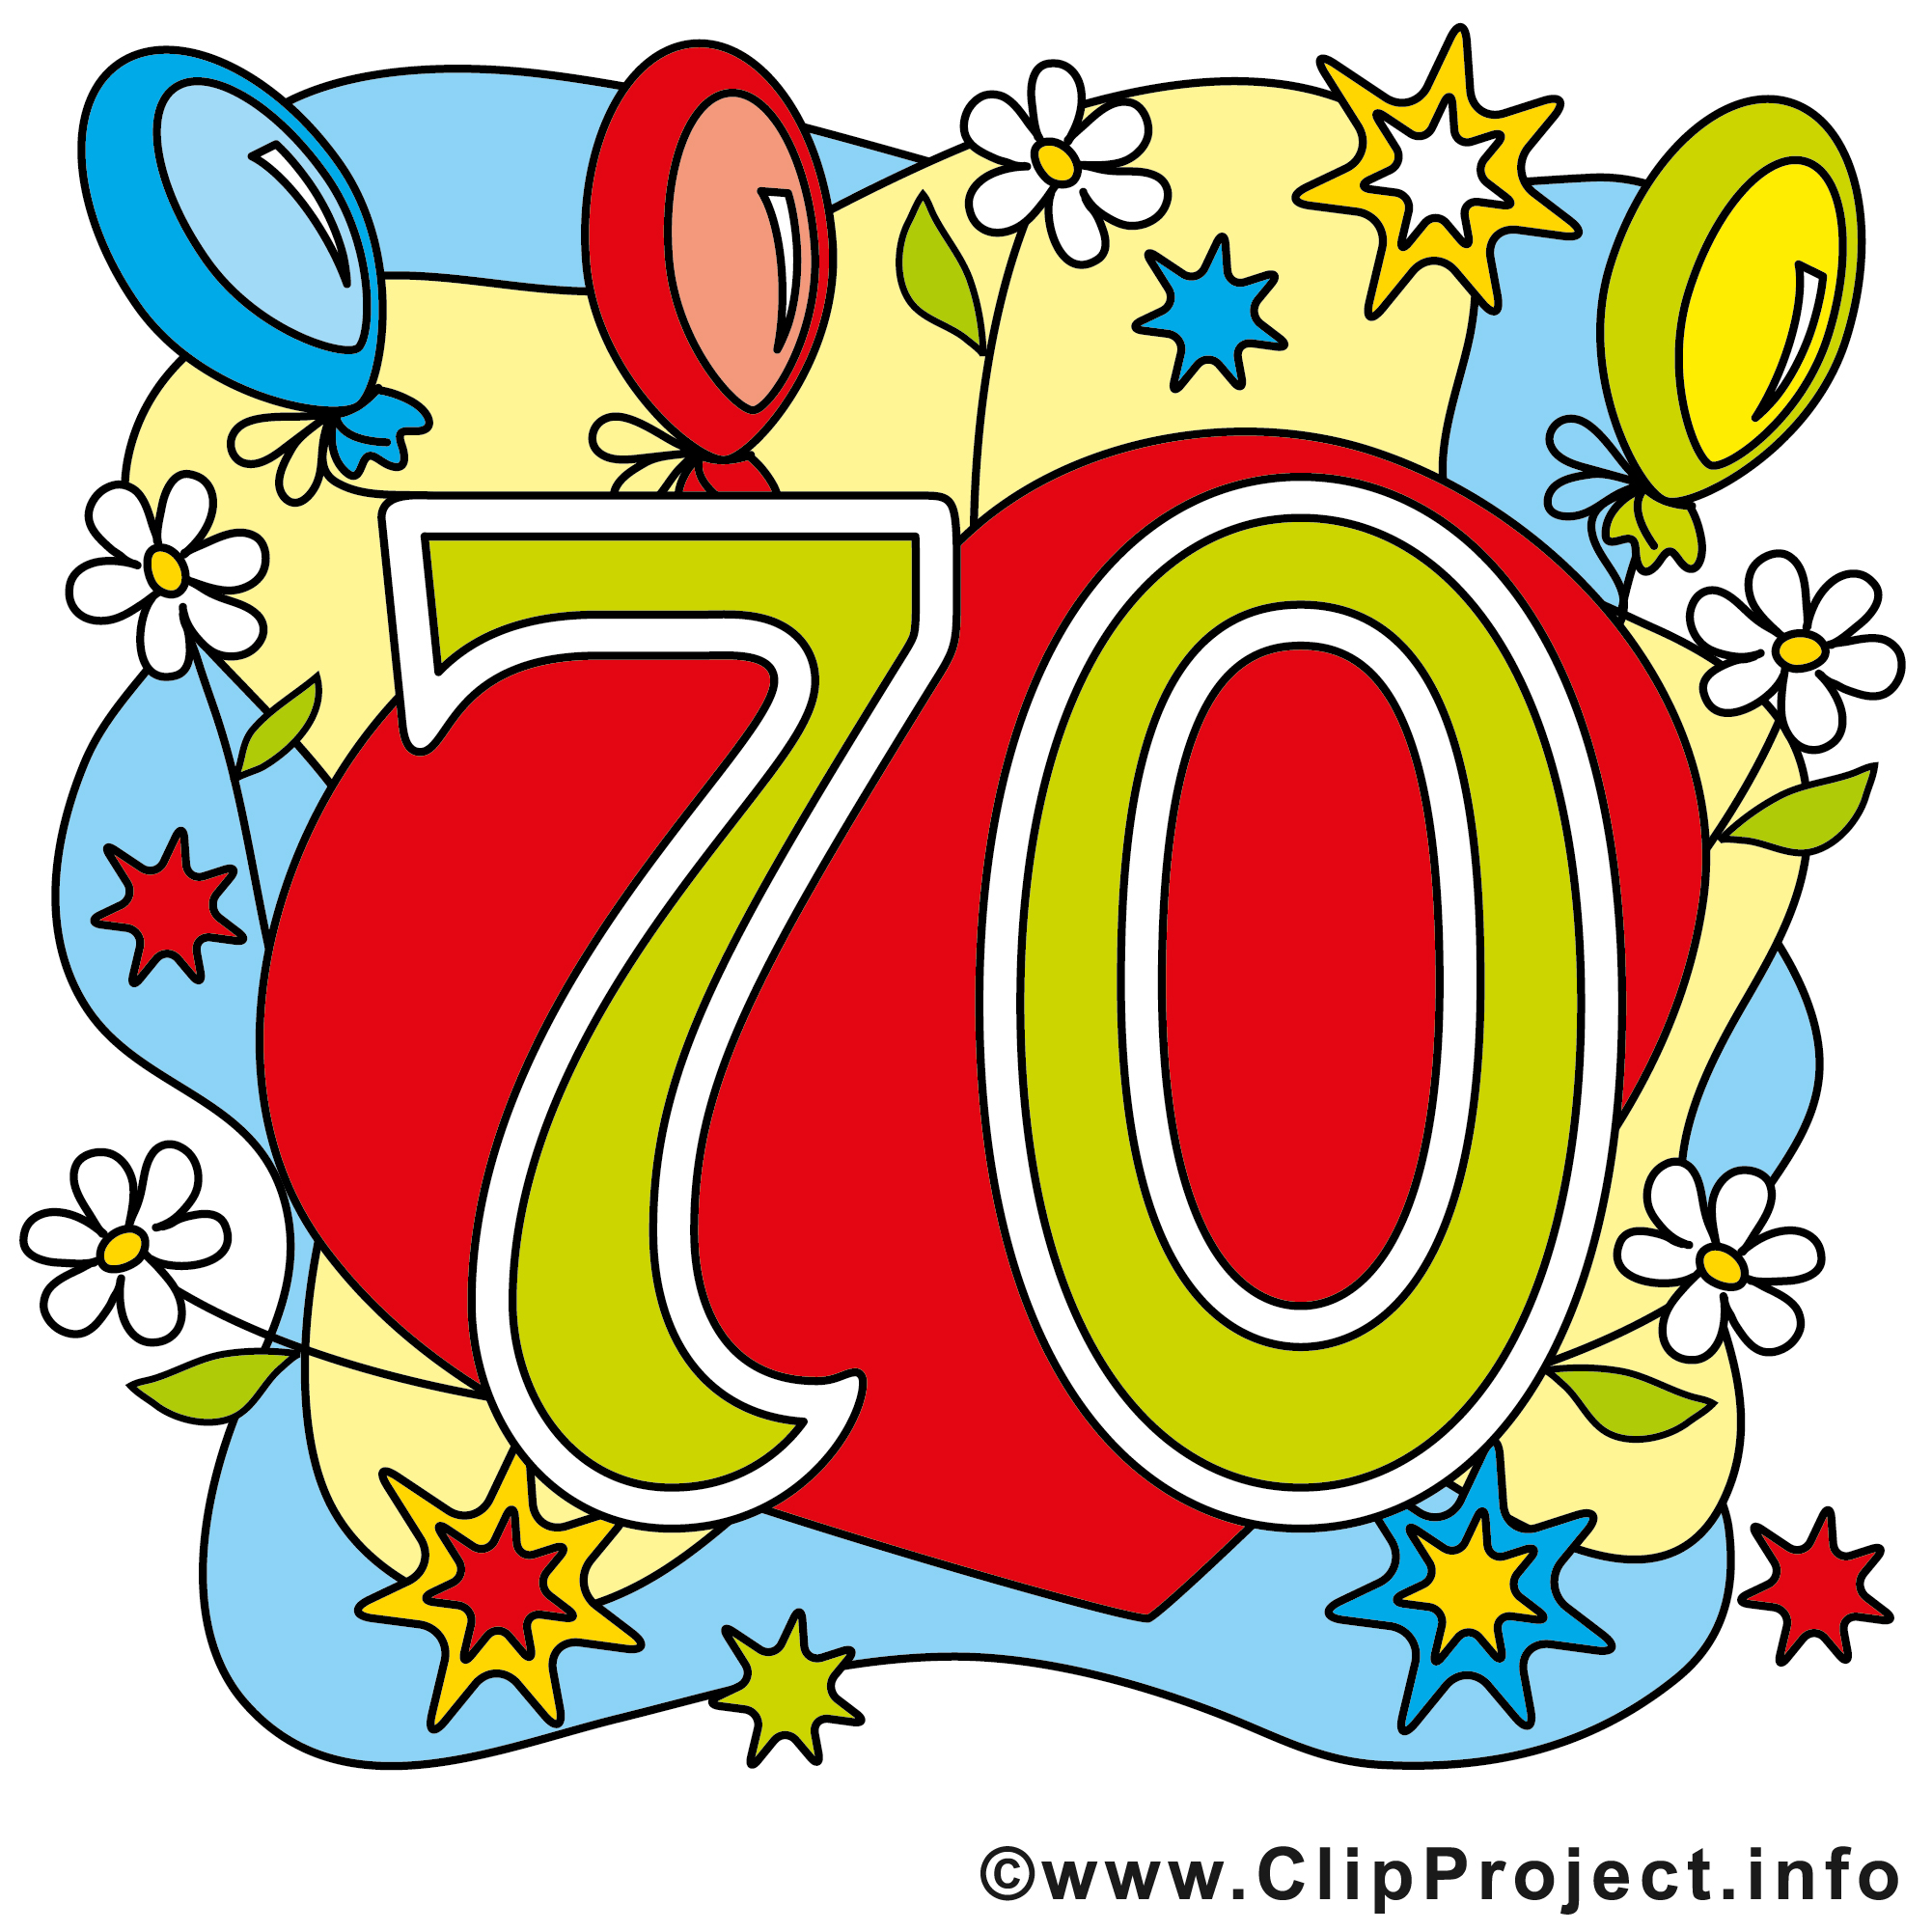 70 clipart.